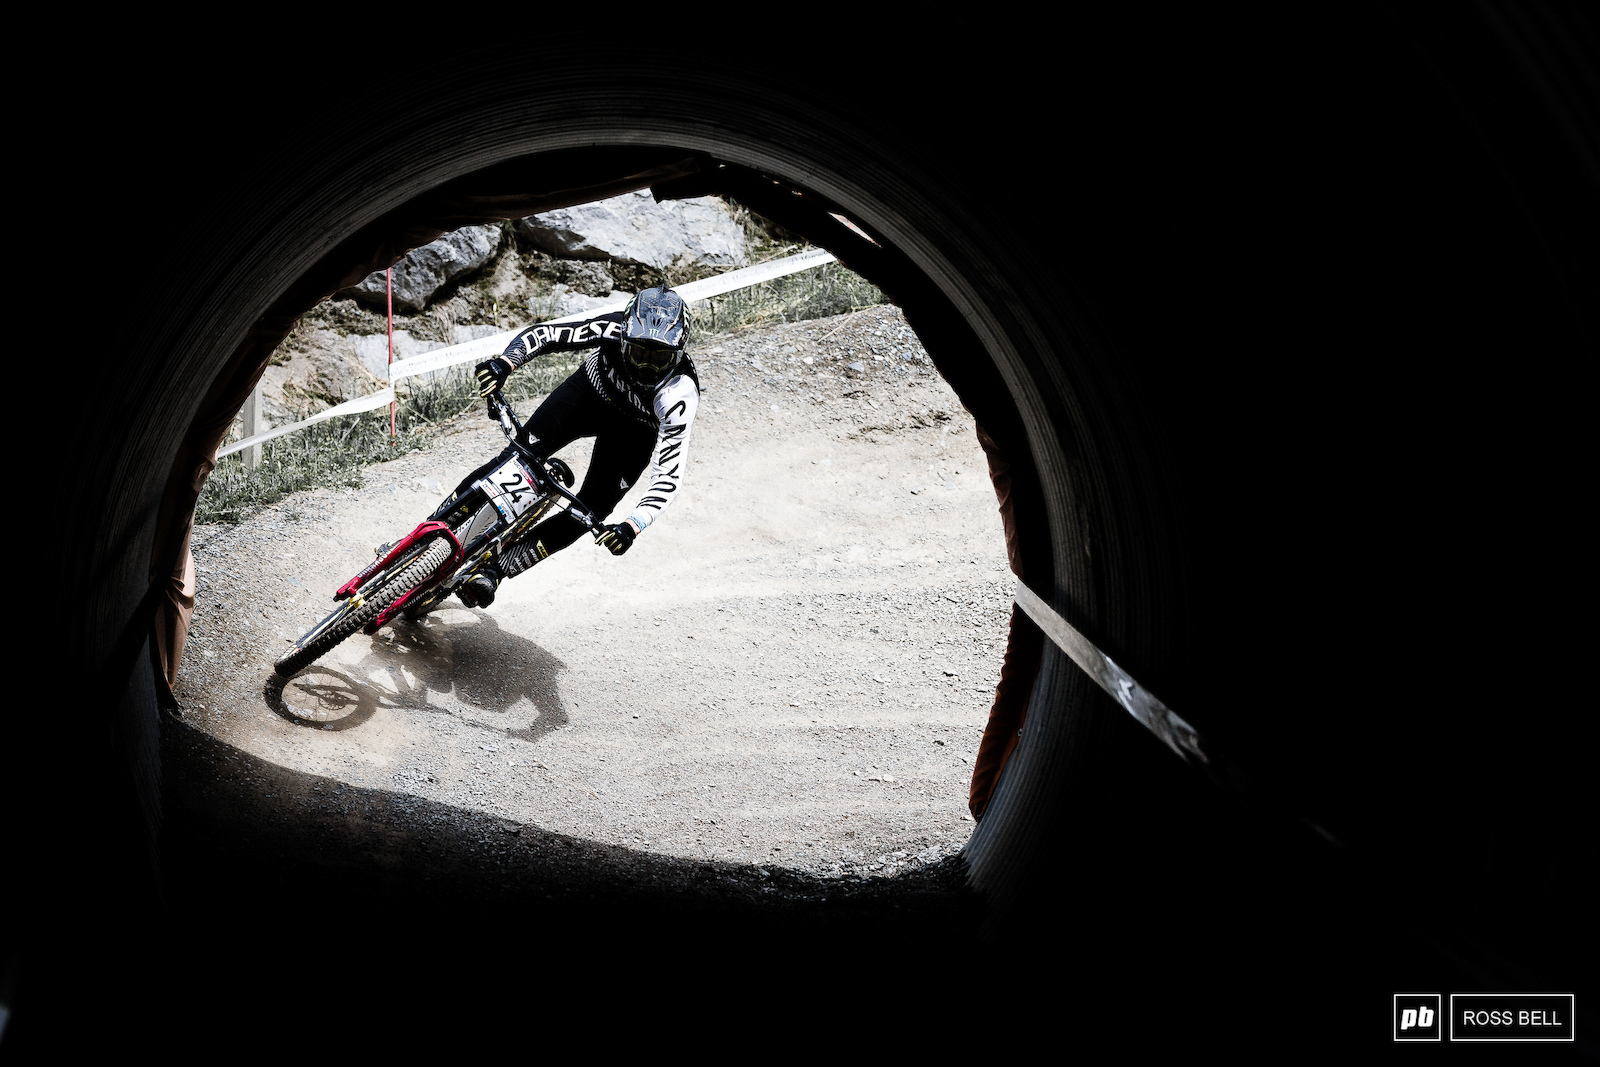 Mark Wallace popping into the shadows in one of the many Leogang tunnels.